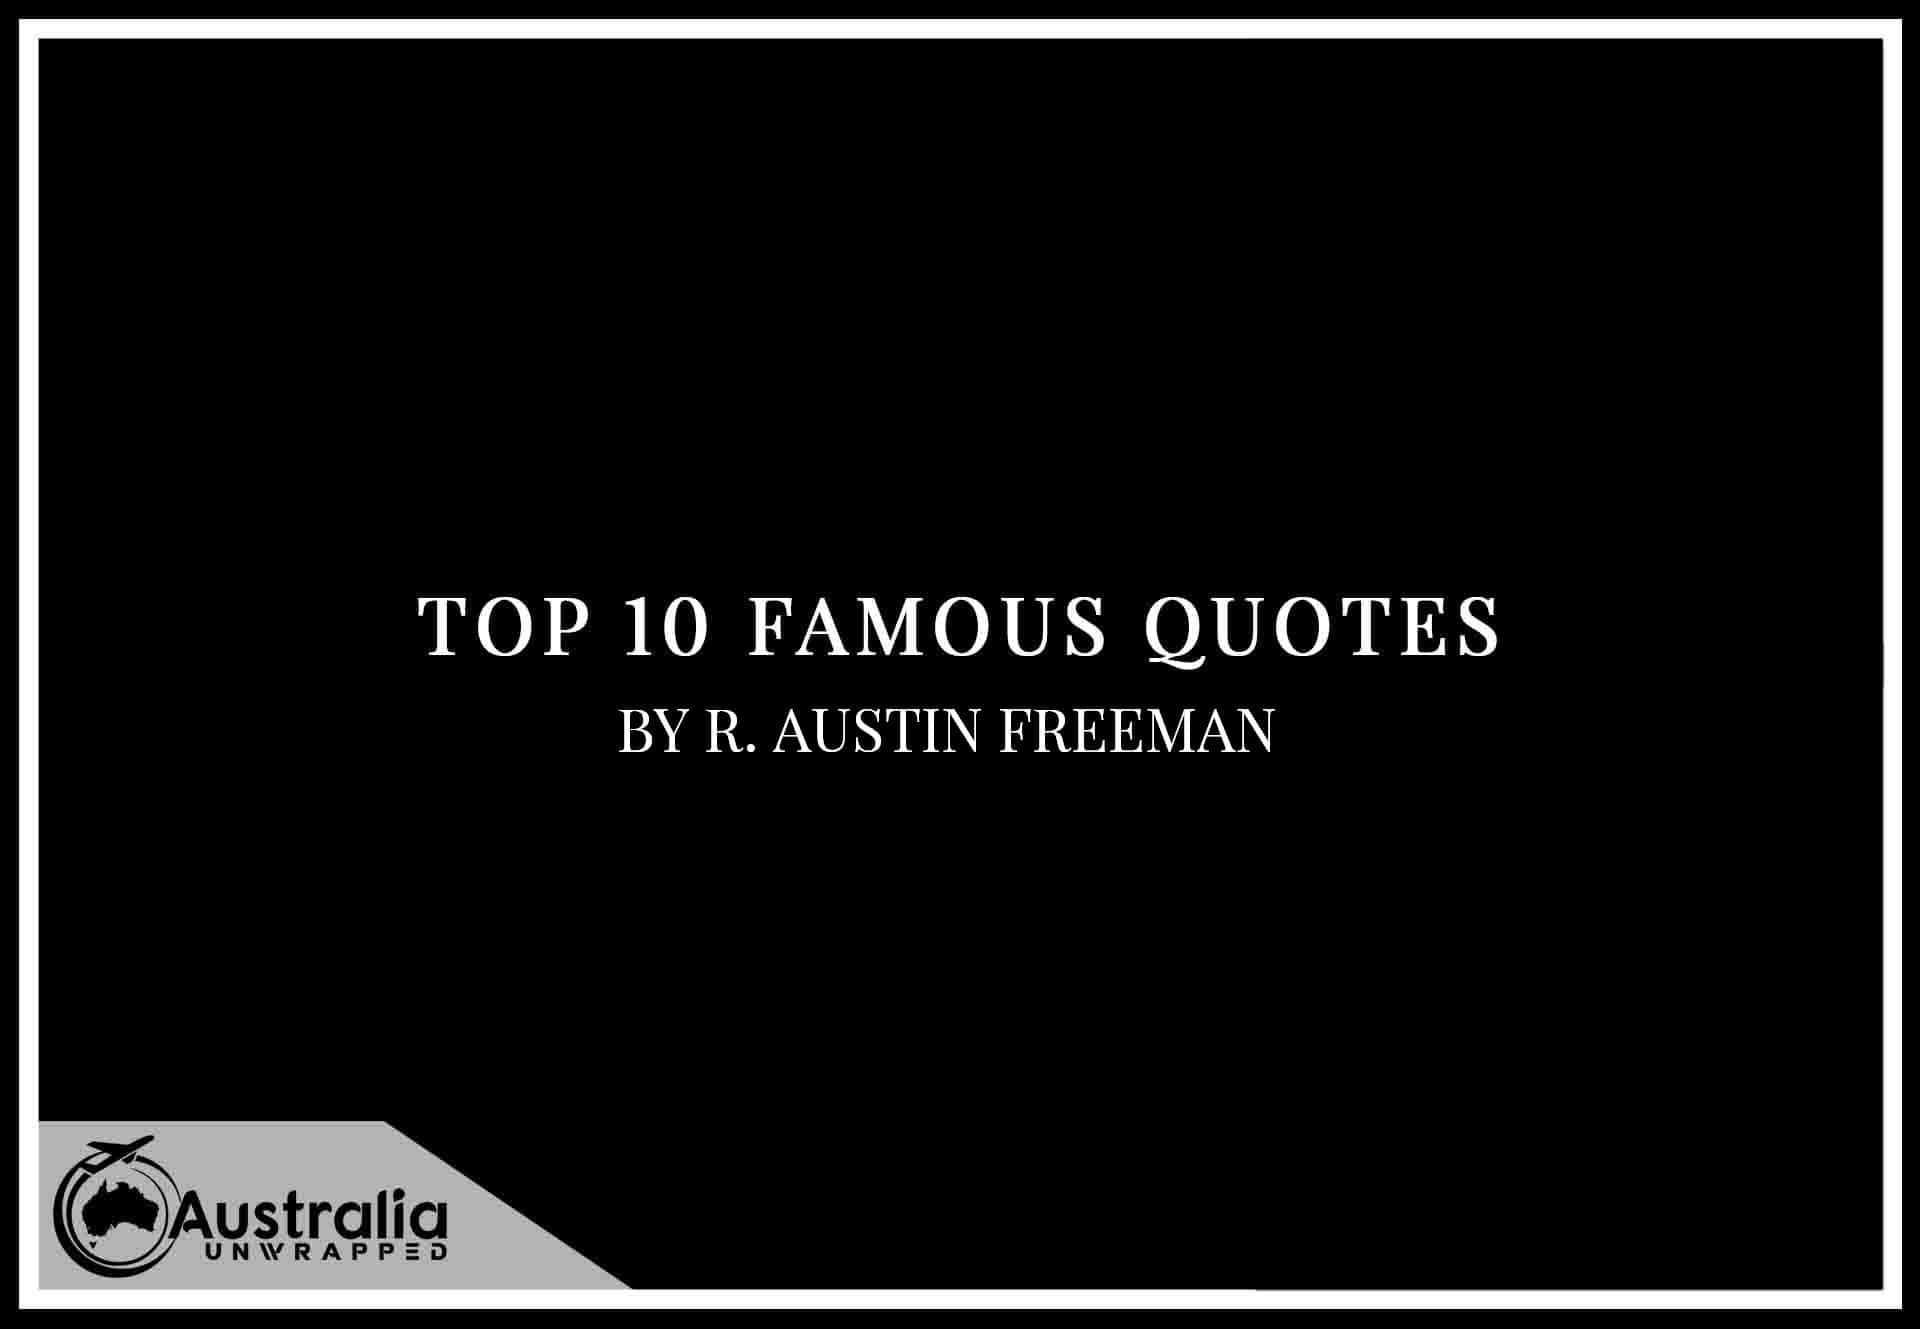 Top 10 Famous Quotes by Author R. Austin Freeman